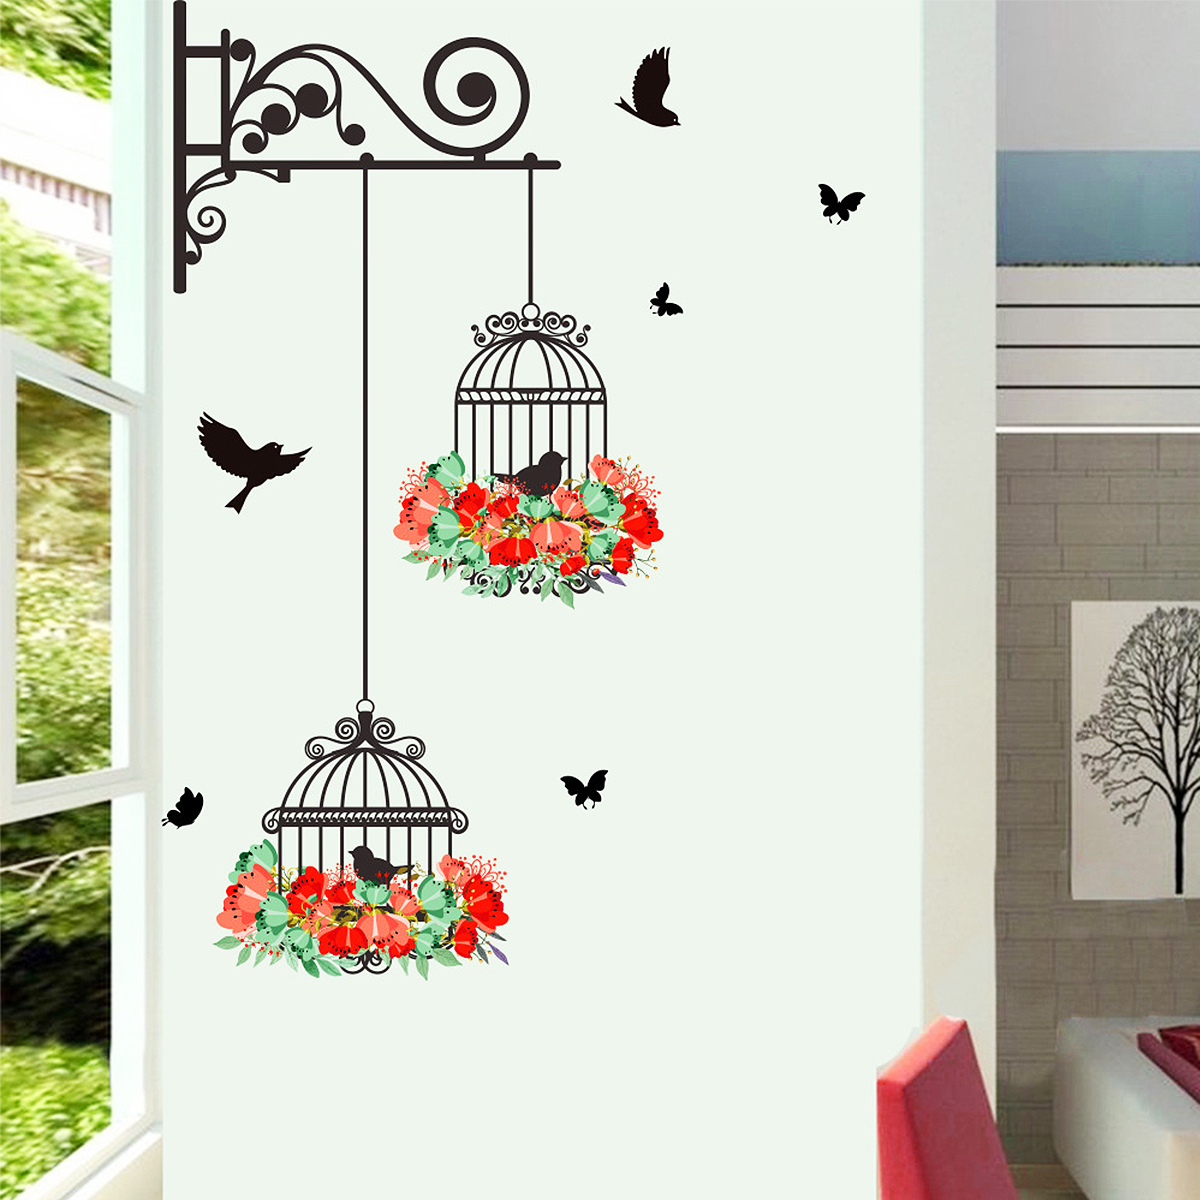 Wall Stickers For Living Rooms You Ll Love In 2021 Visualhunt